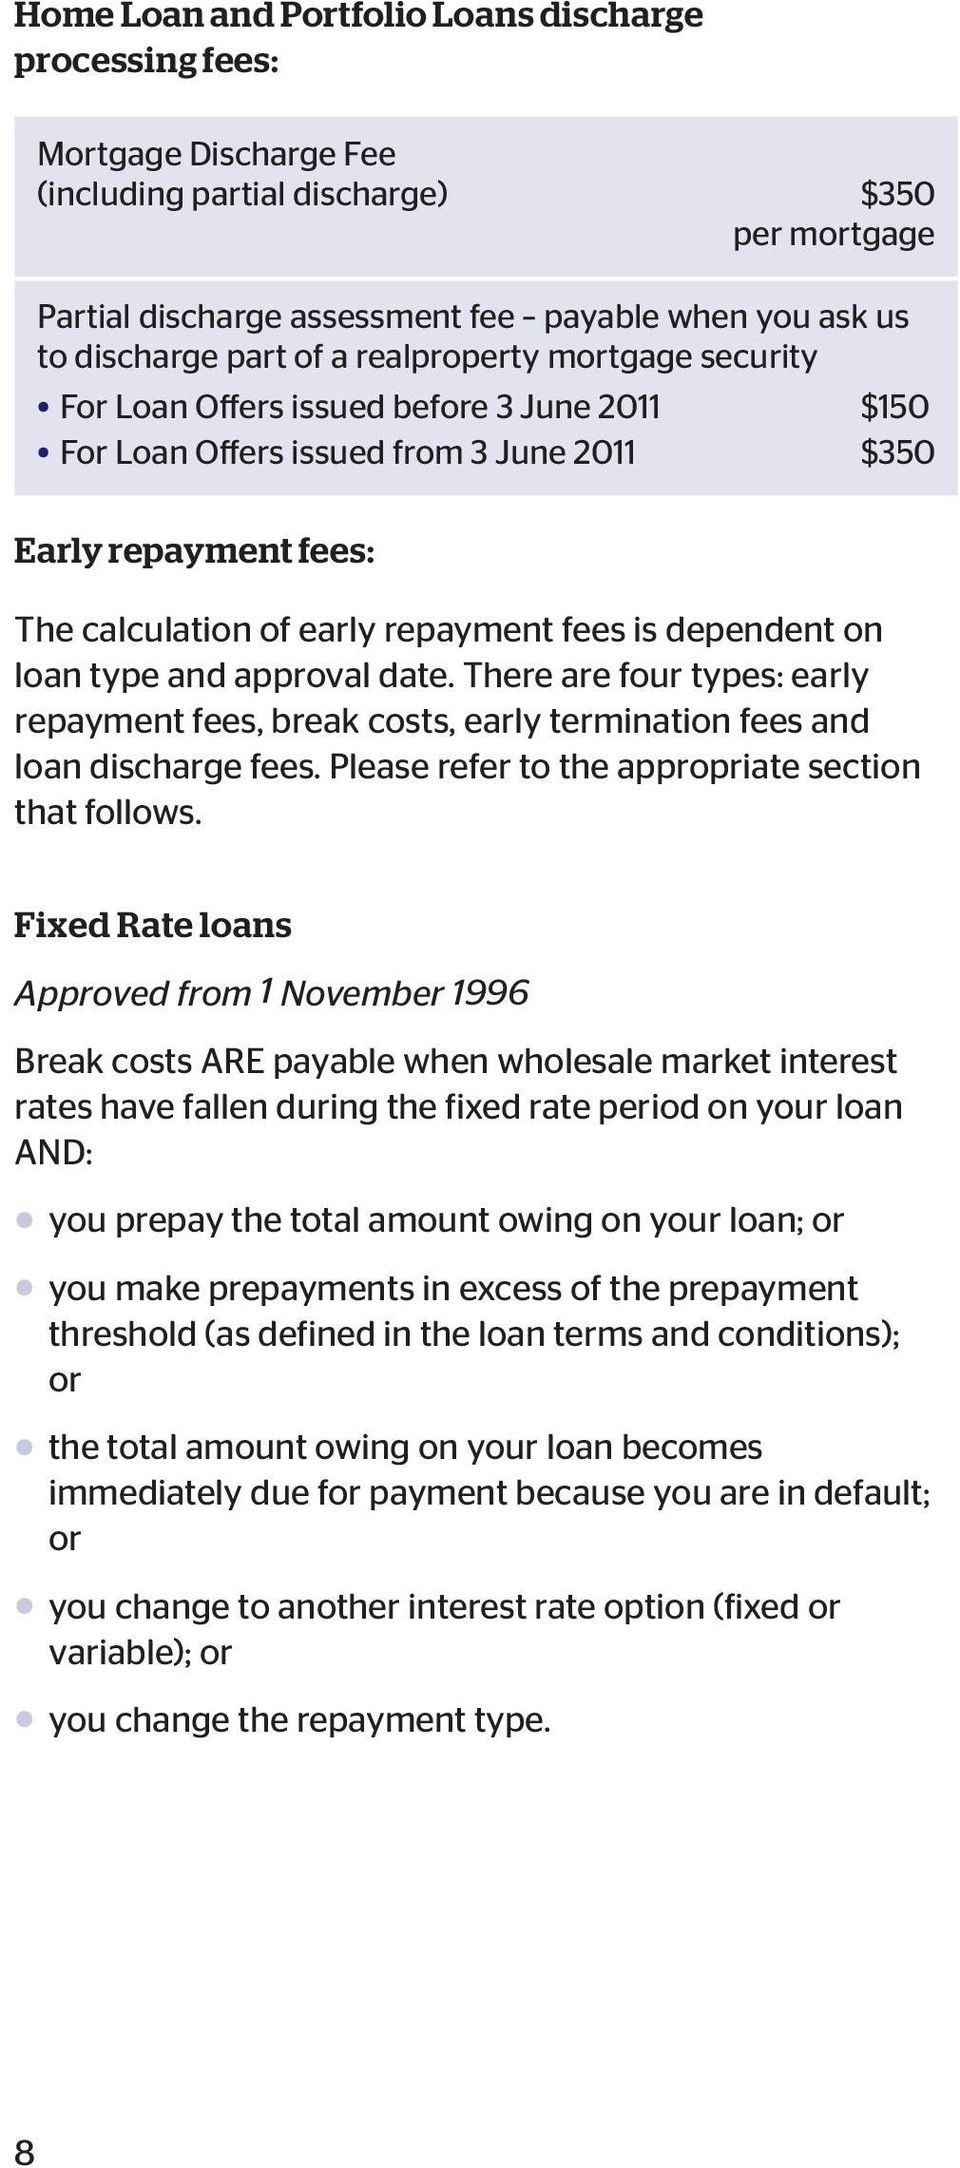 dependent on loan type and approval date. There are four types: early repayment fees, break costs, early termination fees and loan discharge fees. Please refer to the appropriate section that follows.